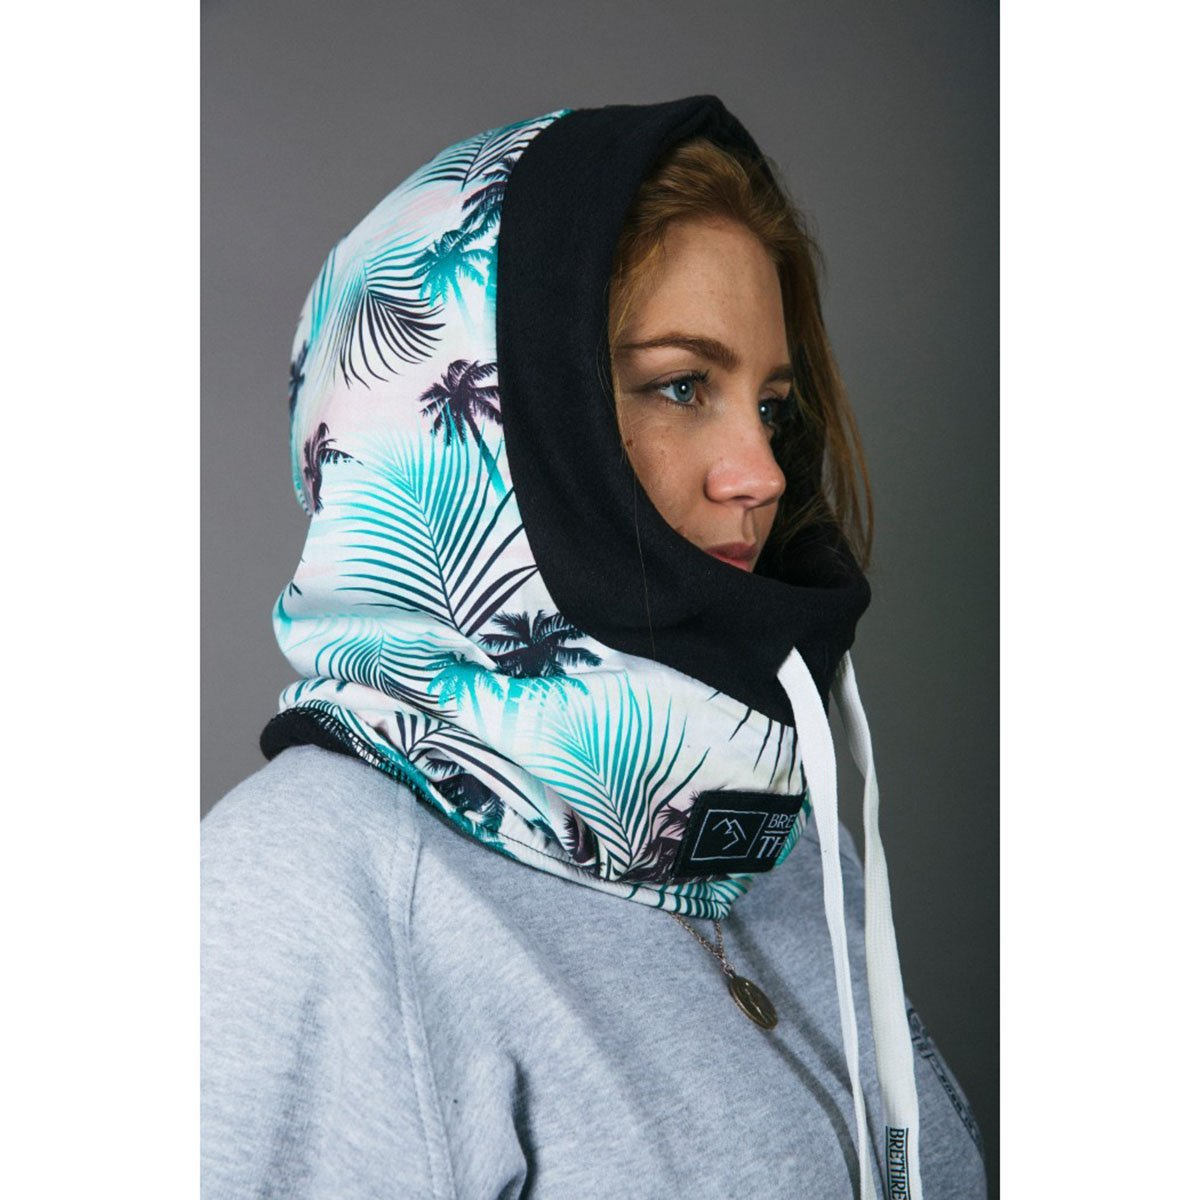 5060615530144, Brethren, Summer Escape Thug Rug, White, Snowboard Hood | Ski Face Mask